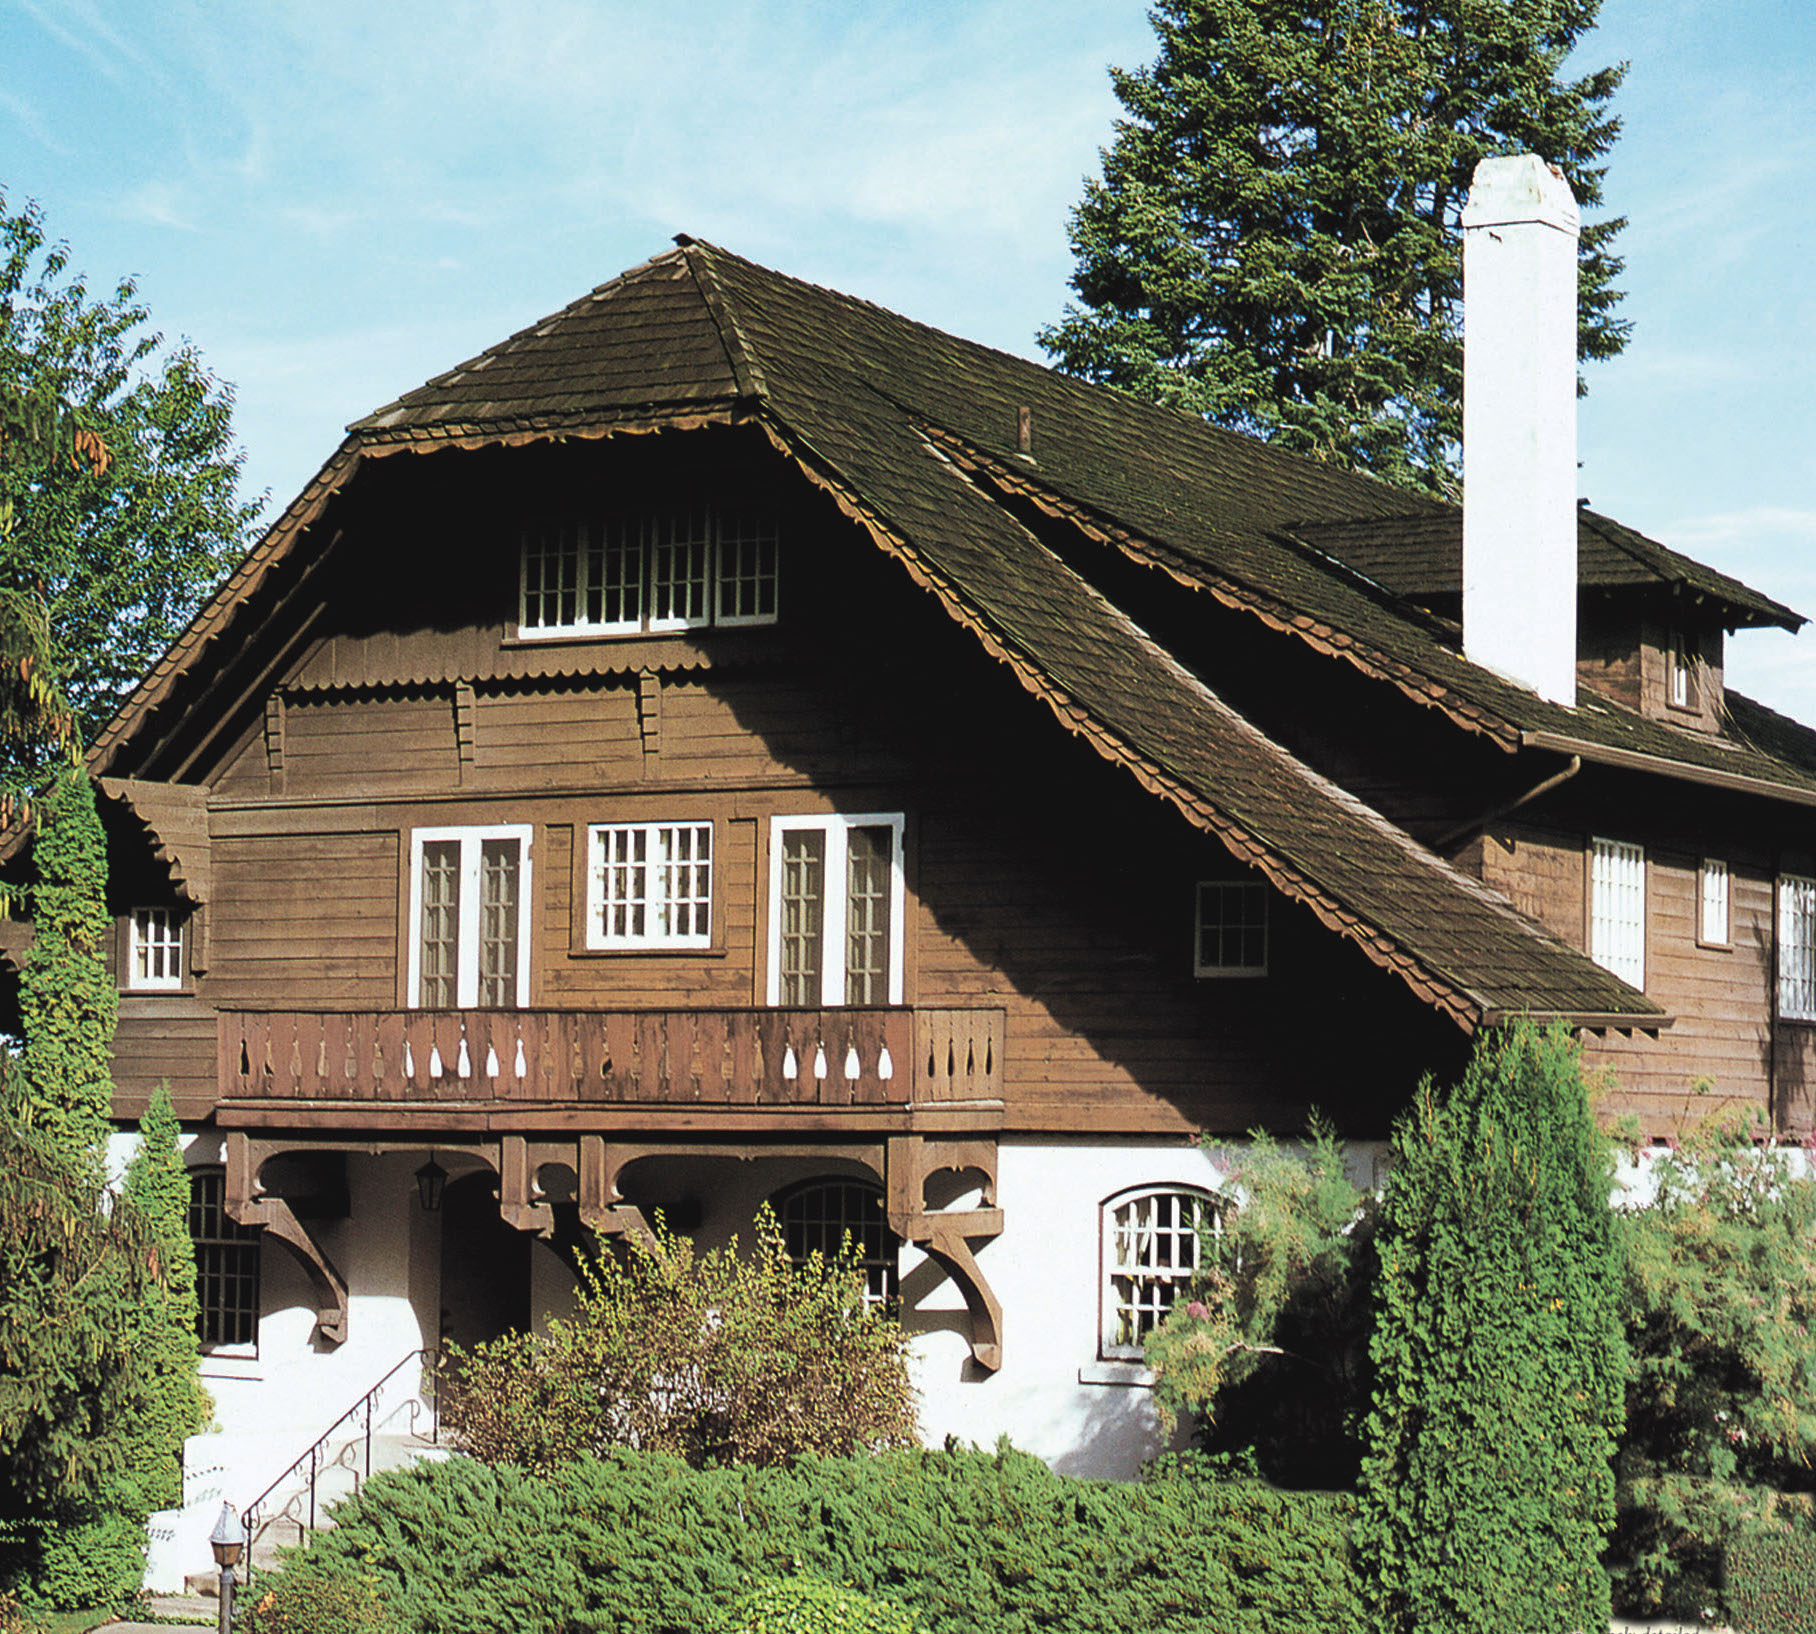 A 1910 house in Spokane is a medieval take on the Swiss Chalet with its clipped gable and huge brackets under the balcony.